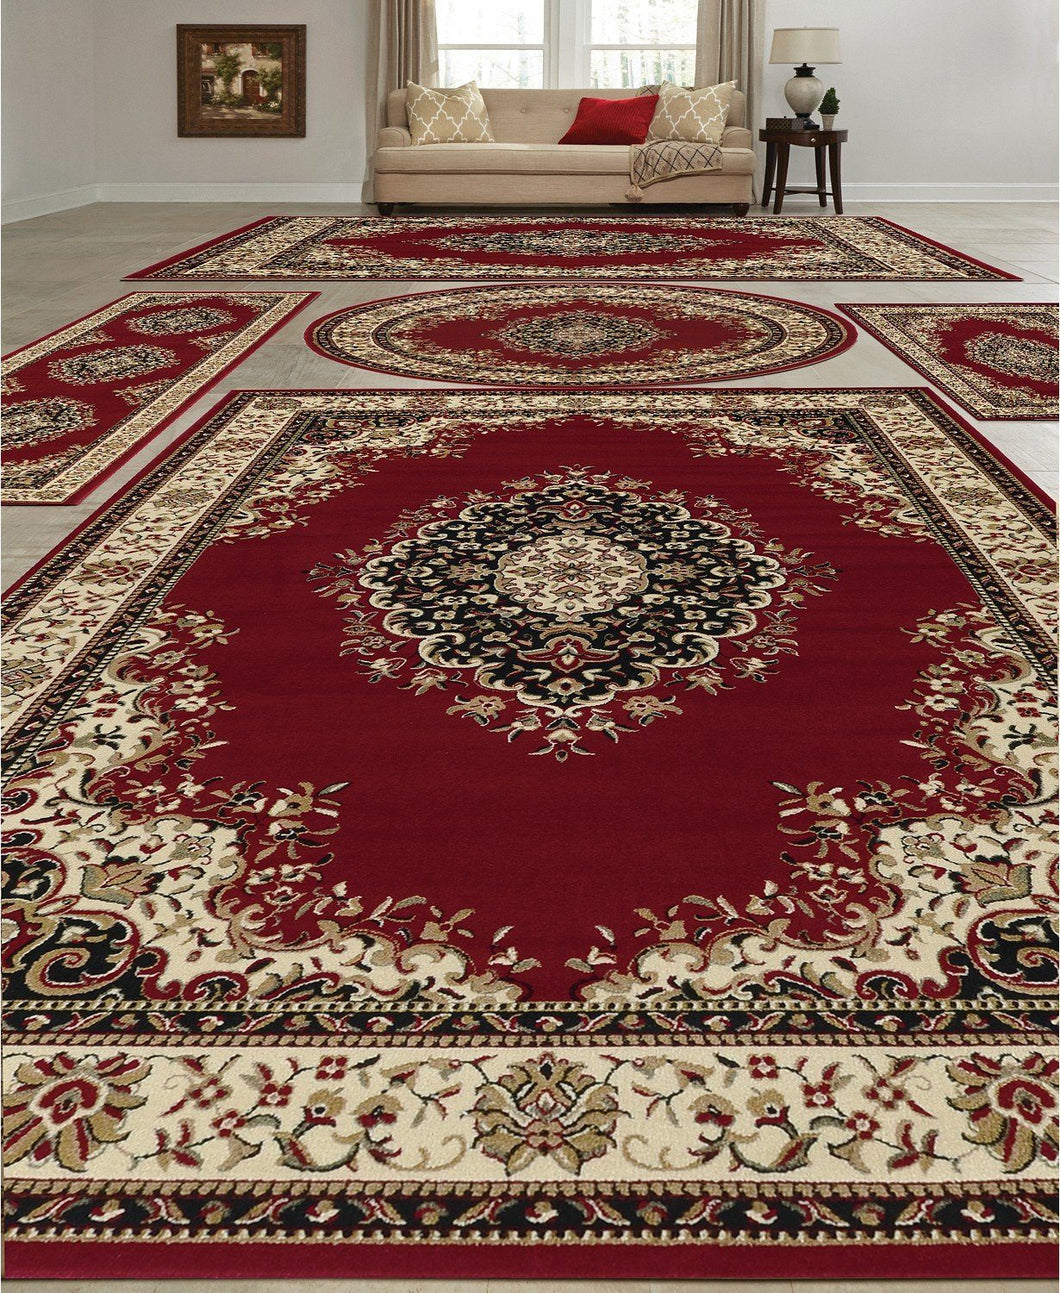 Area Rugs - Vienna Kerman Red